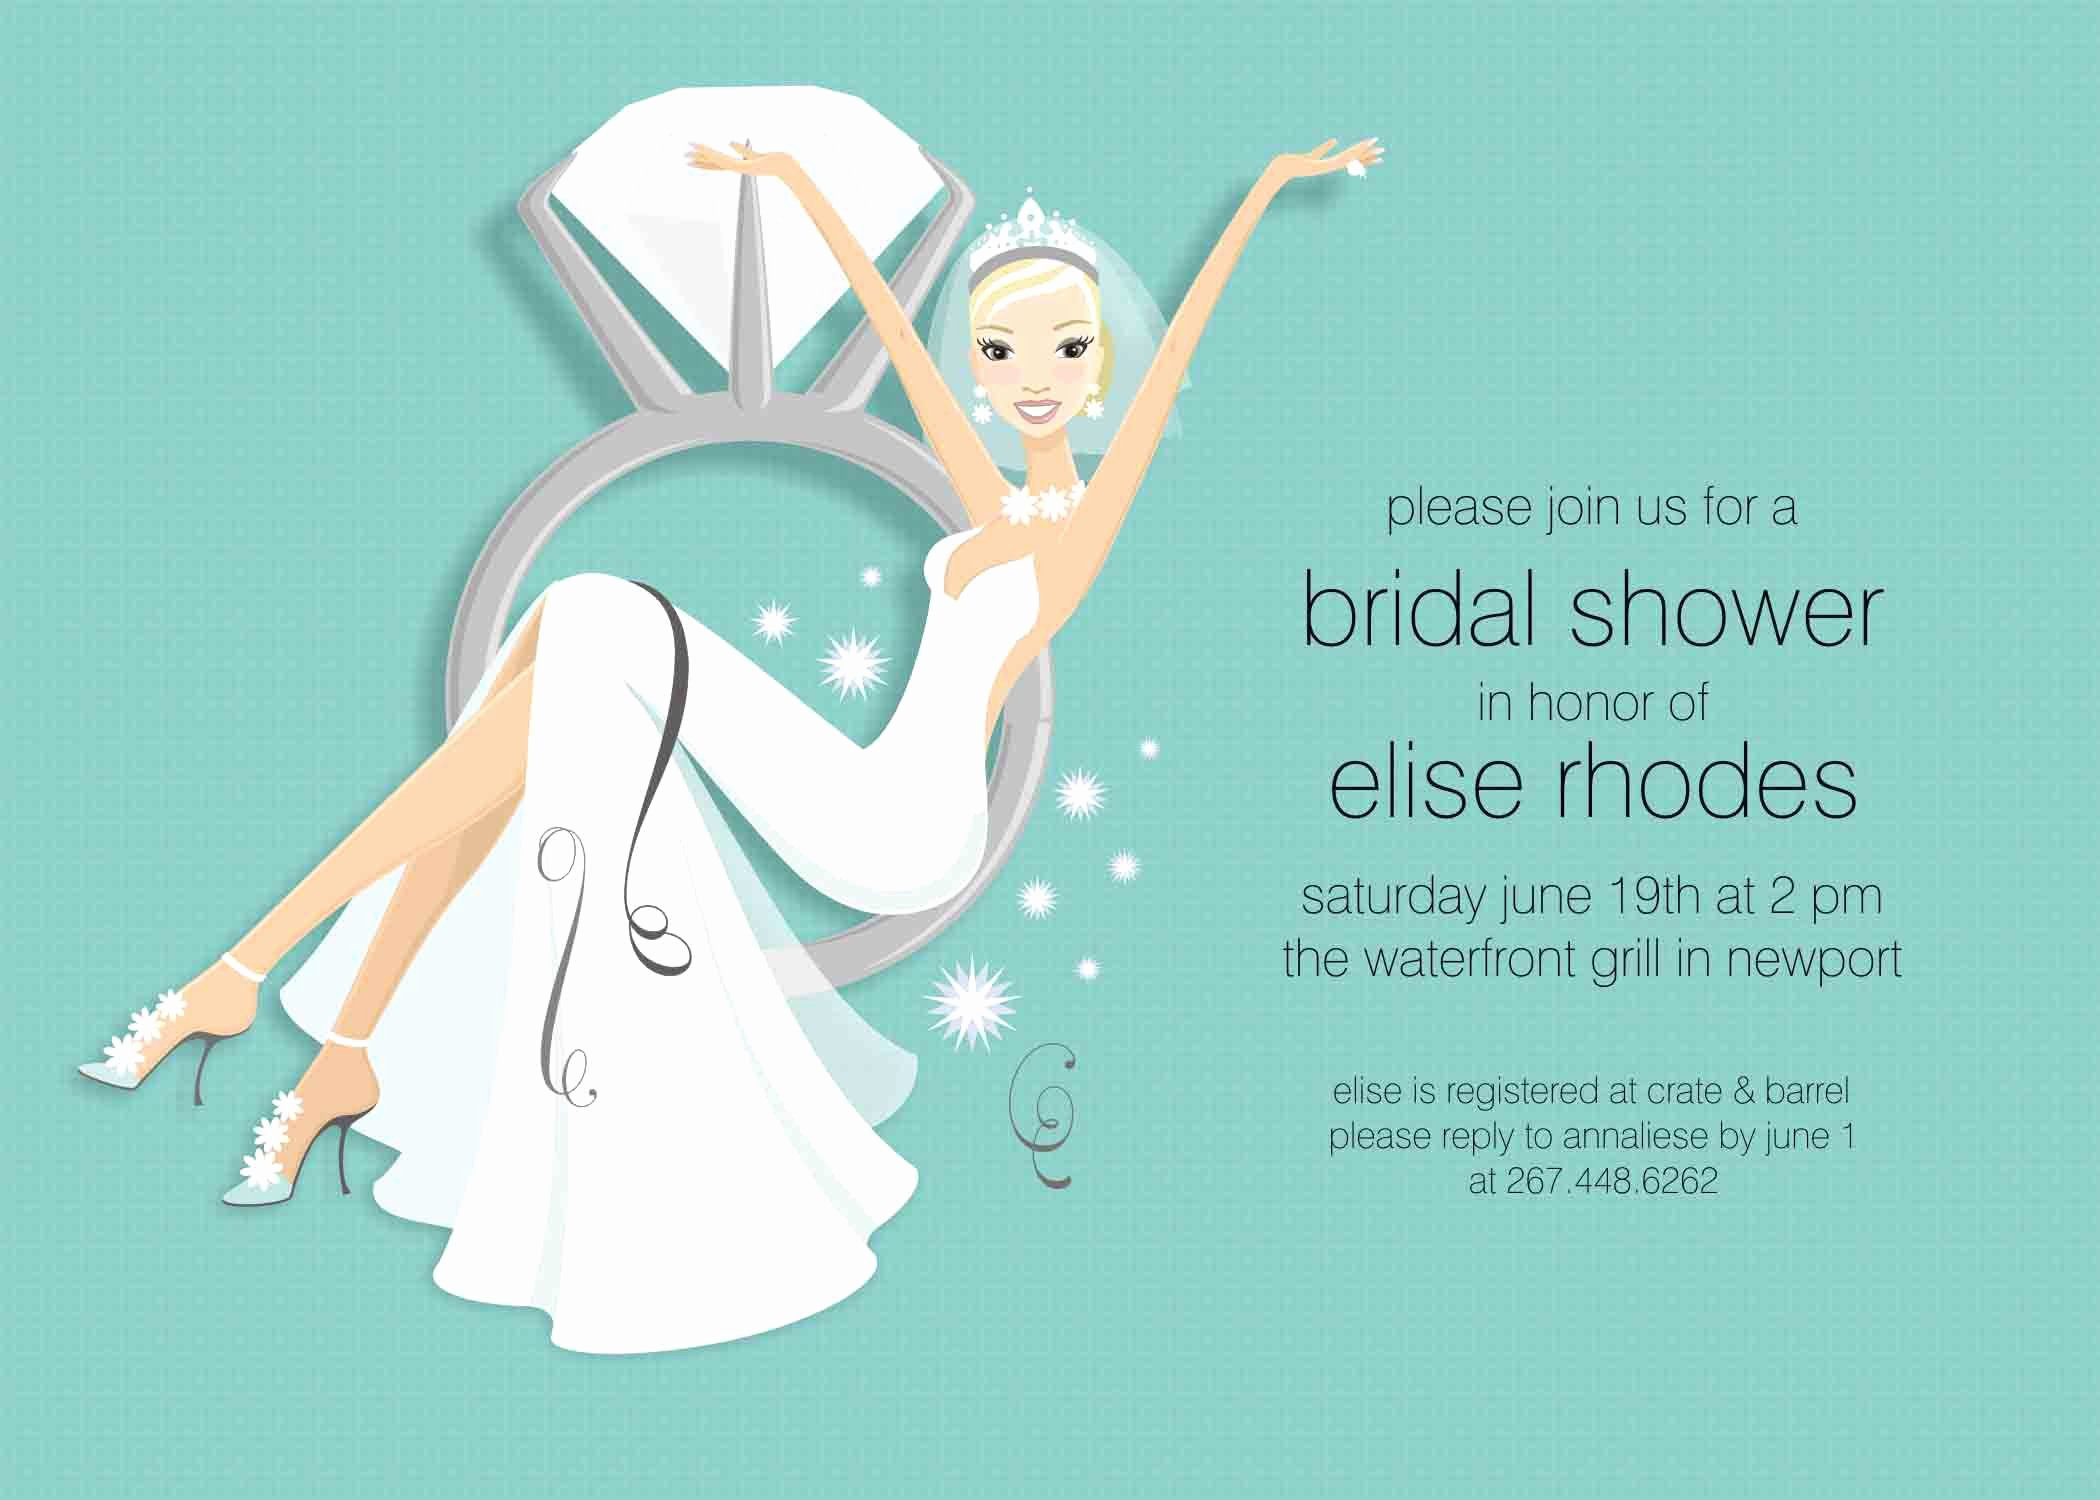 Bridal Shower Invitation Template Lovely Template Free Bridal Shower Invitation Template Bridal